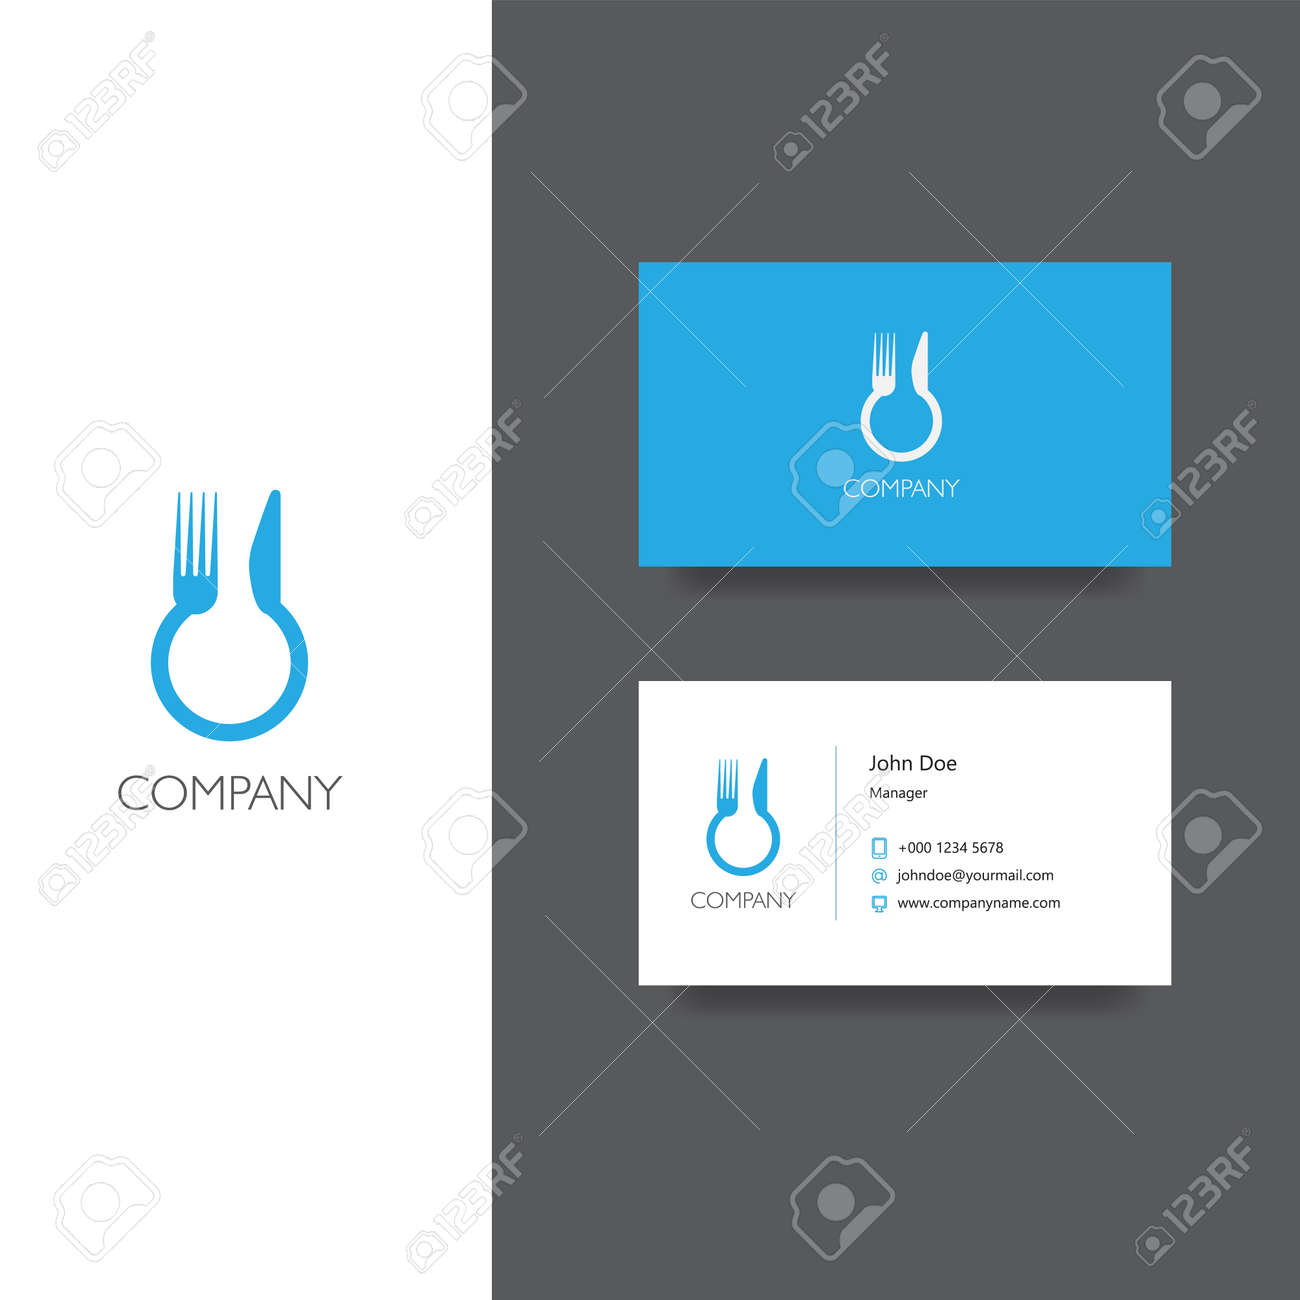 Vector eps logo for food delivery eat service or restoraunt vector eps logo for food delivery eat service or restoraunt company business card template colourmoves Choice Image